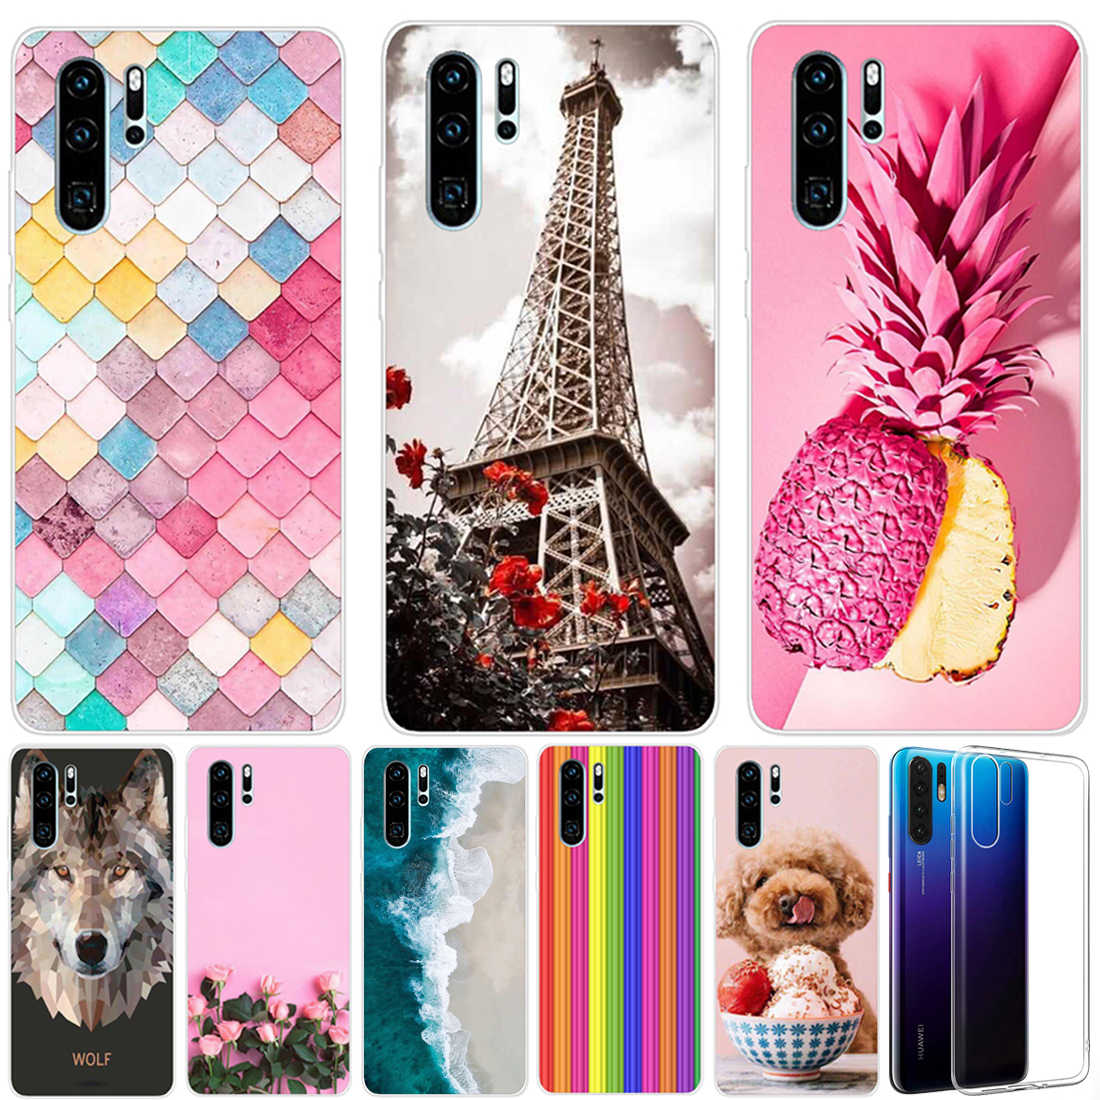 Coque For Huawei P30 Lite Case Silicon Capa Phone Case Huawei P30 Pro Case Transparent Funda Huawei P30 P 30 Lite P30 Pro Cover